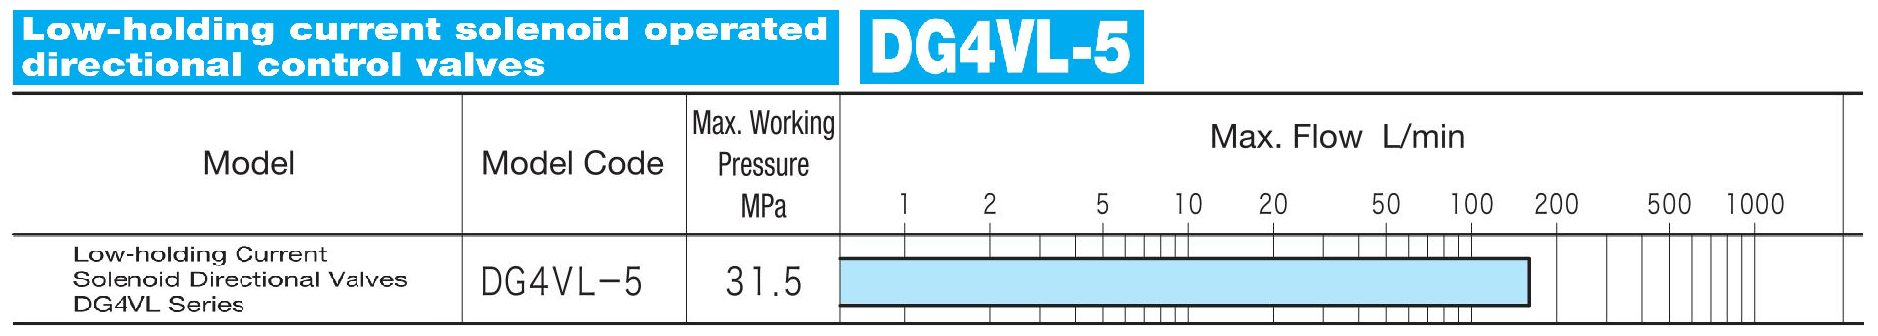 DG4VL5 Lowholding current solenoid operated directional control